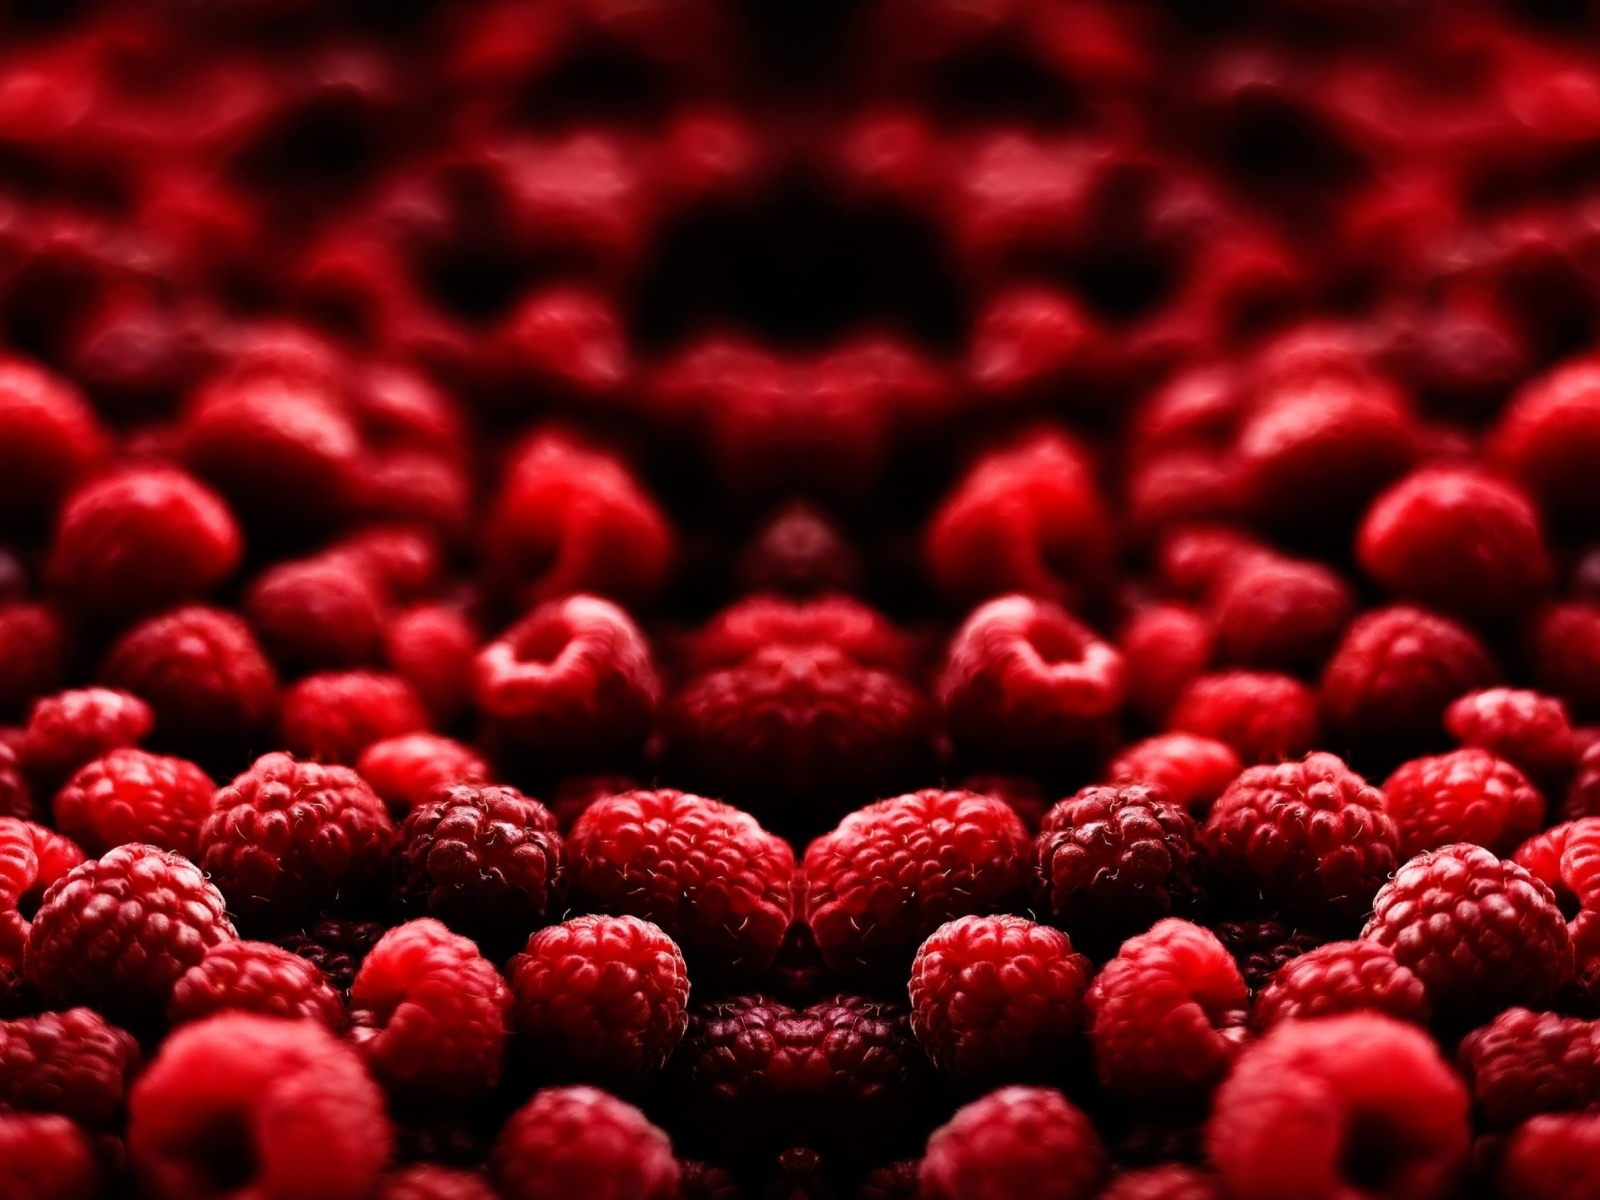 Appetizing Raspberries screenshot #1 1600x1200